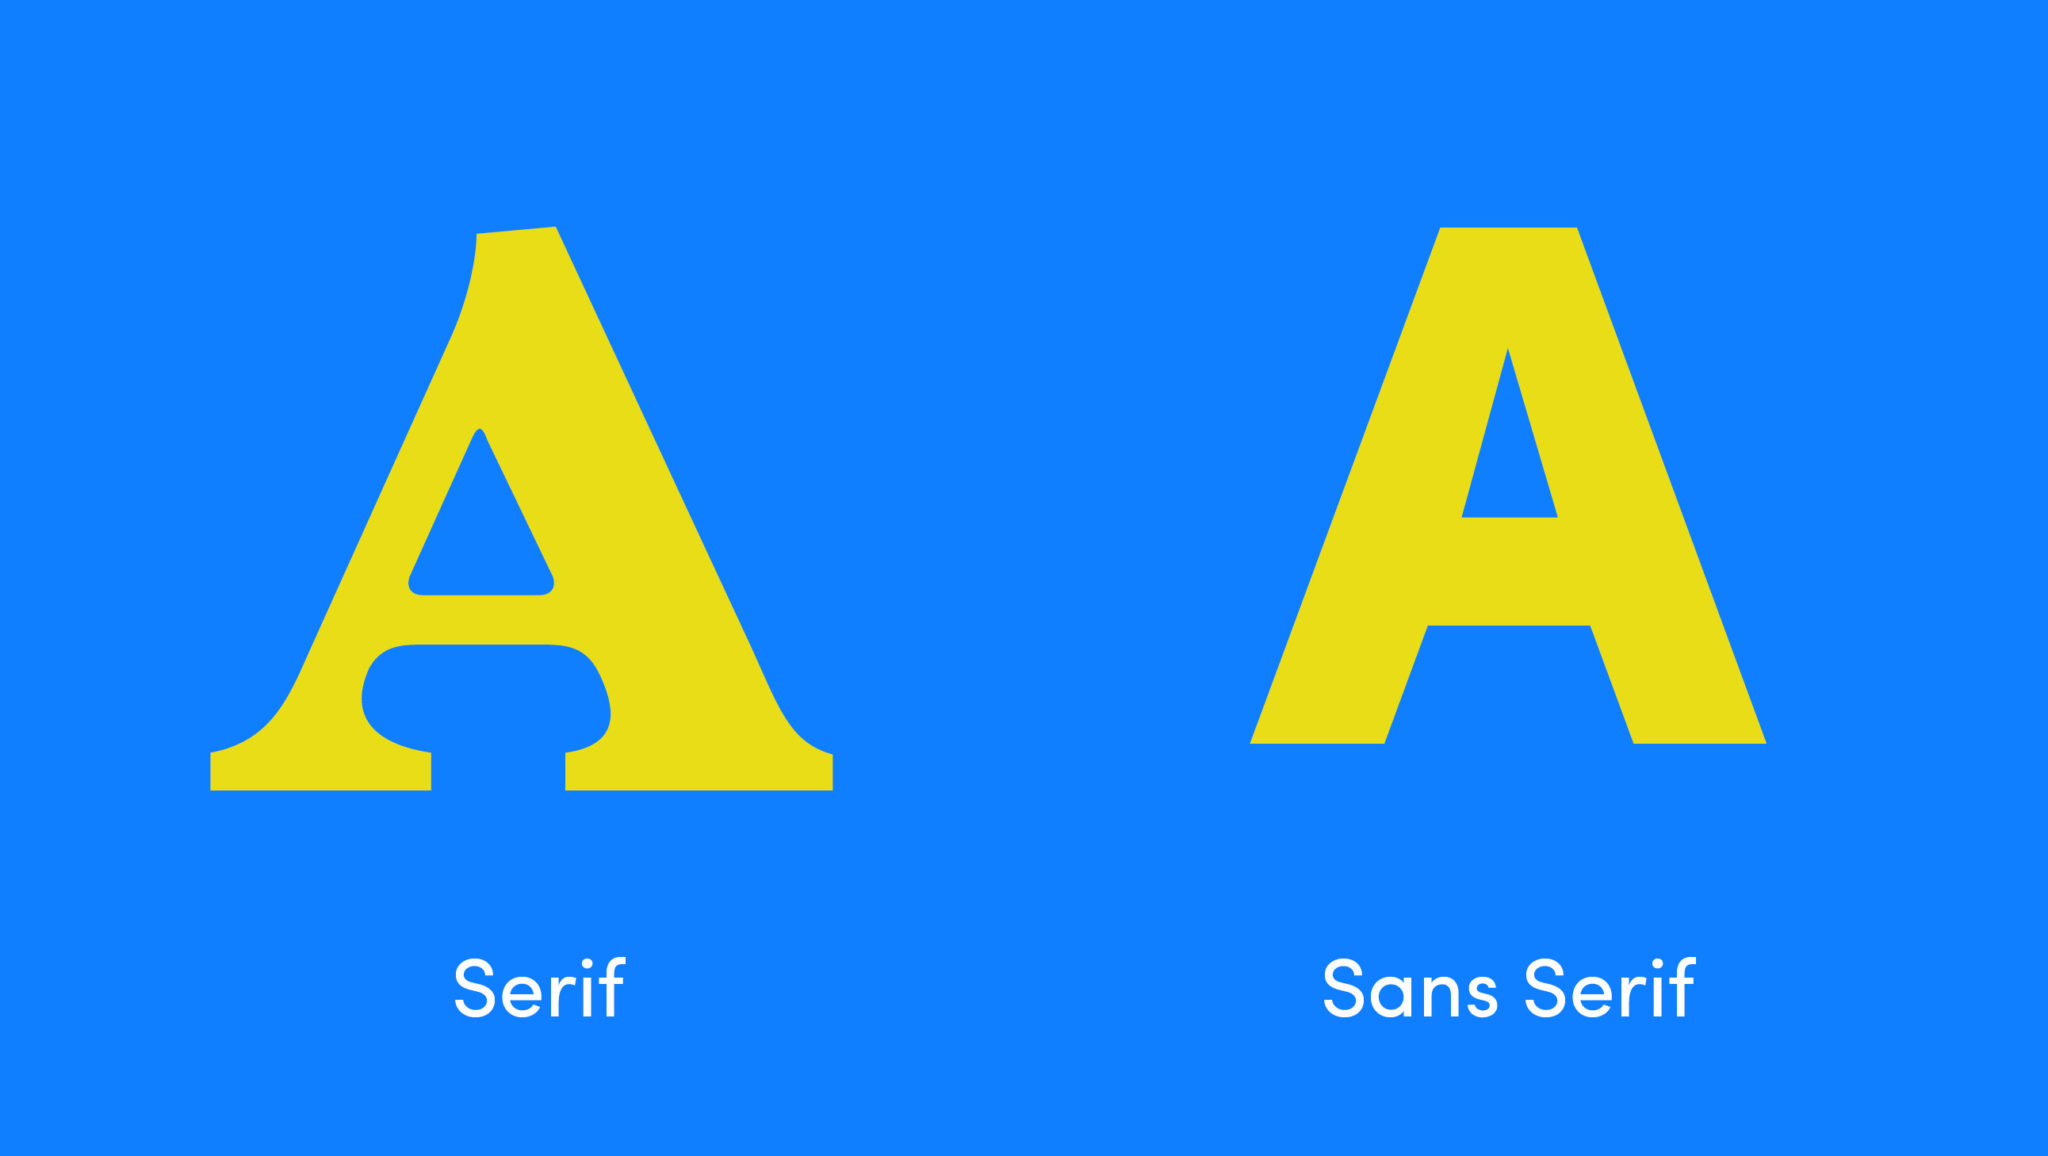 difference between serif and sans serif fonts